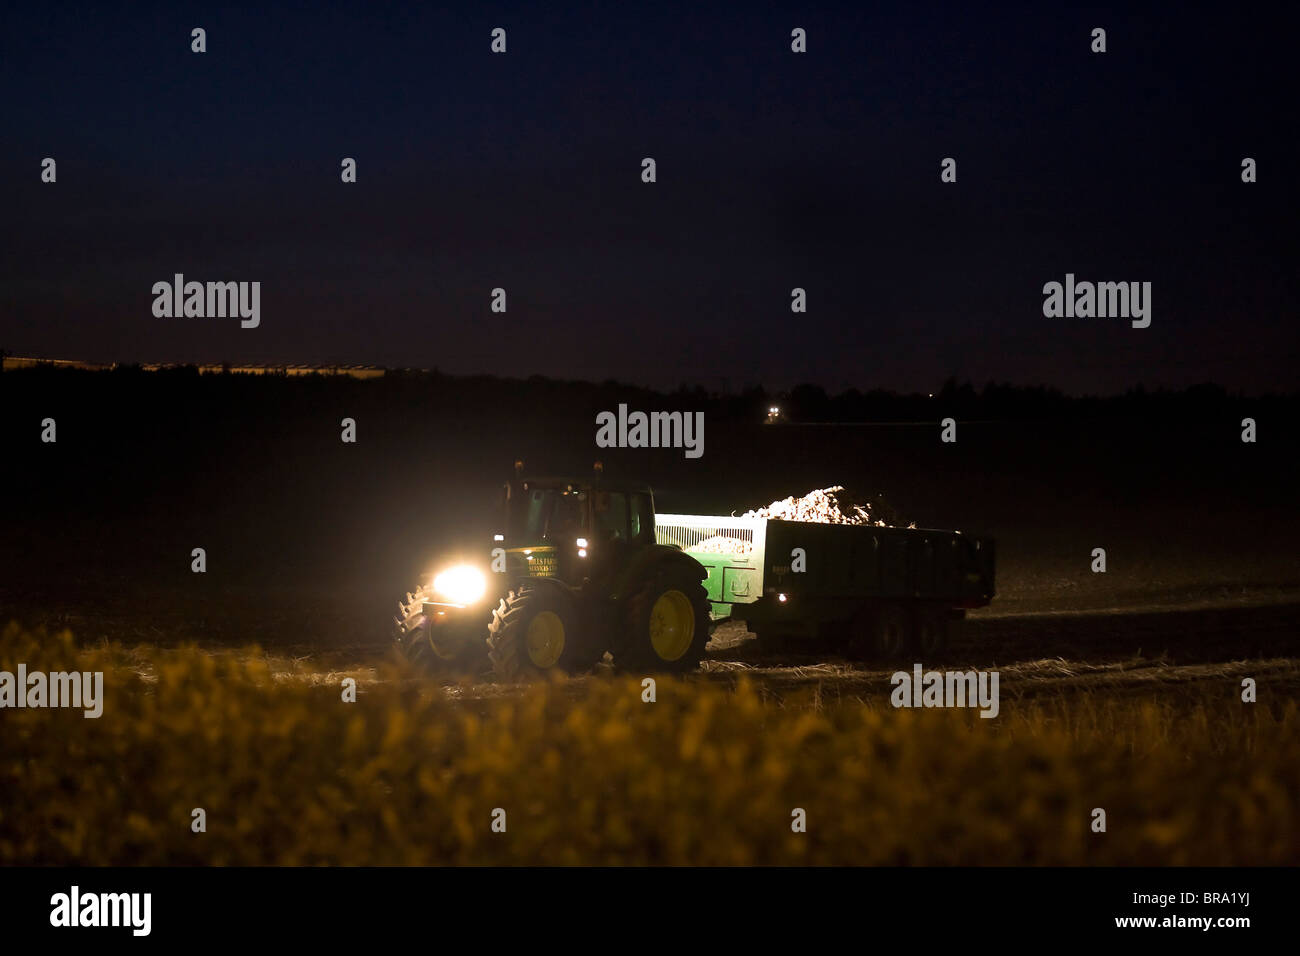 A farmer in Tamworth, Staffordshire, using his tractor during evening time to harvest crops during October before - Stock Image